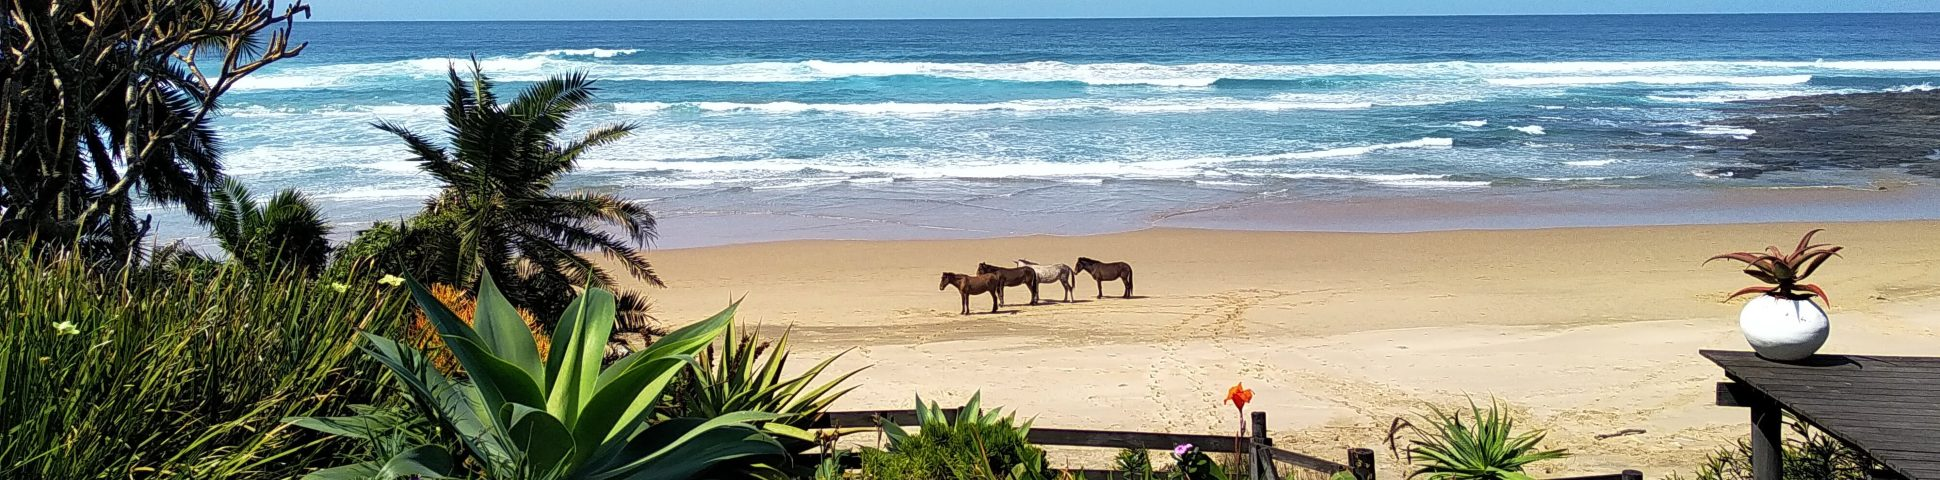 Horses at the beach of Eastern Cape (South Africa)